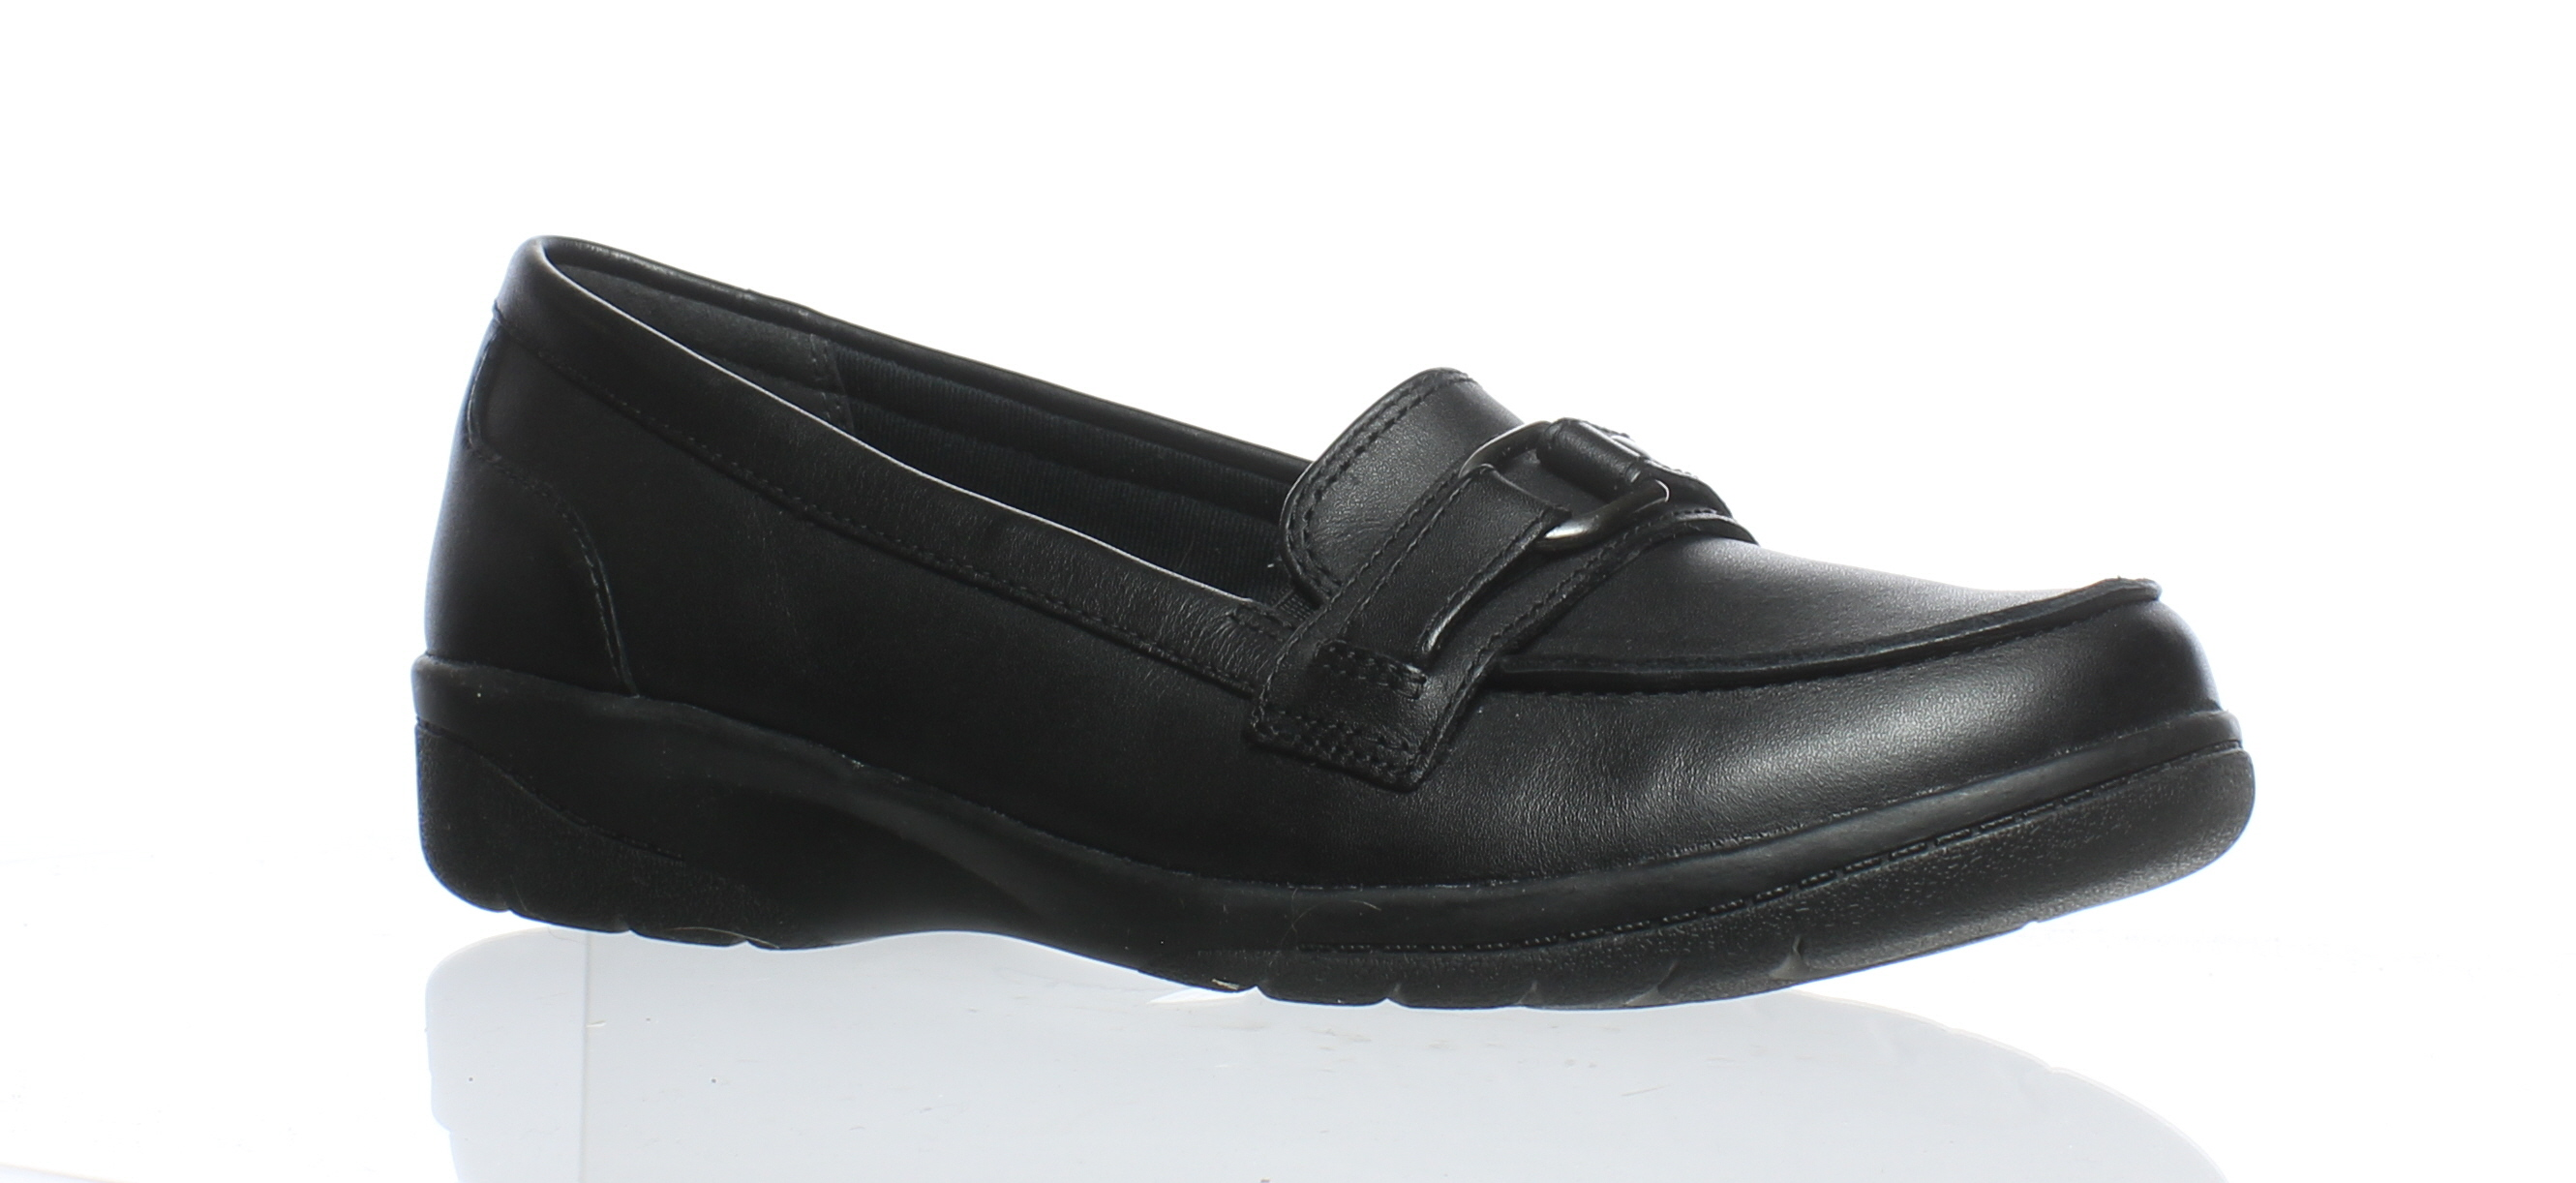 e2c8b127736 Clarks Womens Black Leather Loafers Size 6.5 (C